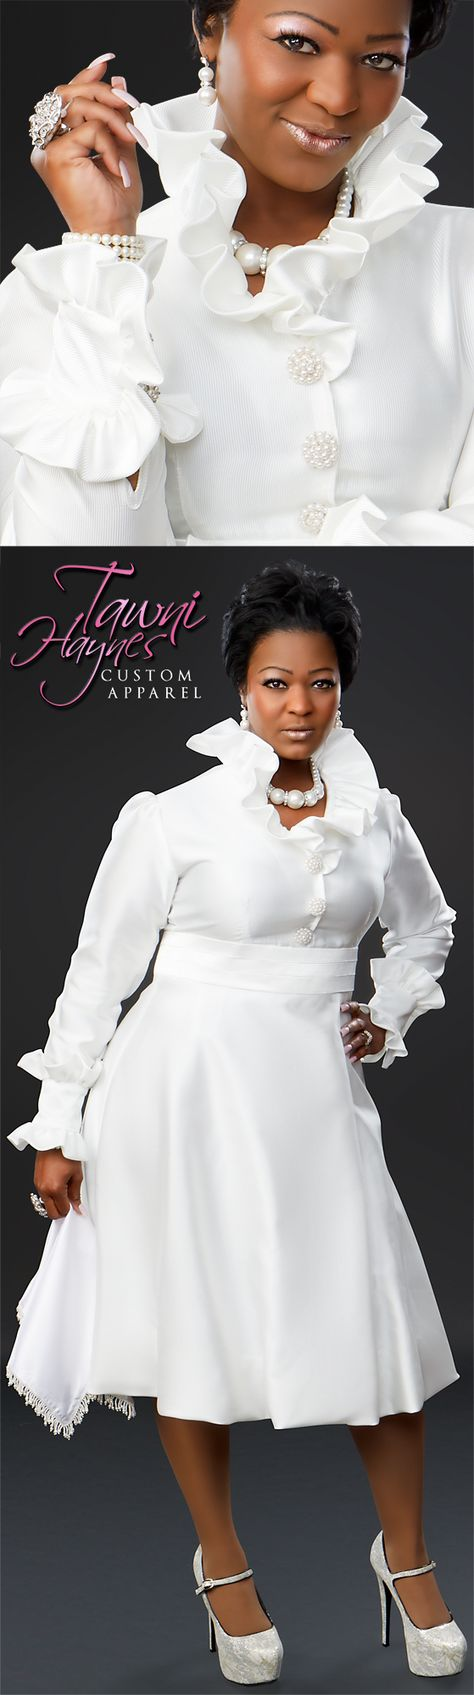 Custom-Made White Bubble Dress and matching Lap Scarf by Designer Tawni Haynes 972-754-5096.